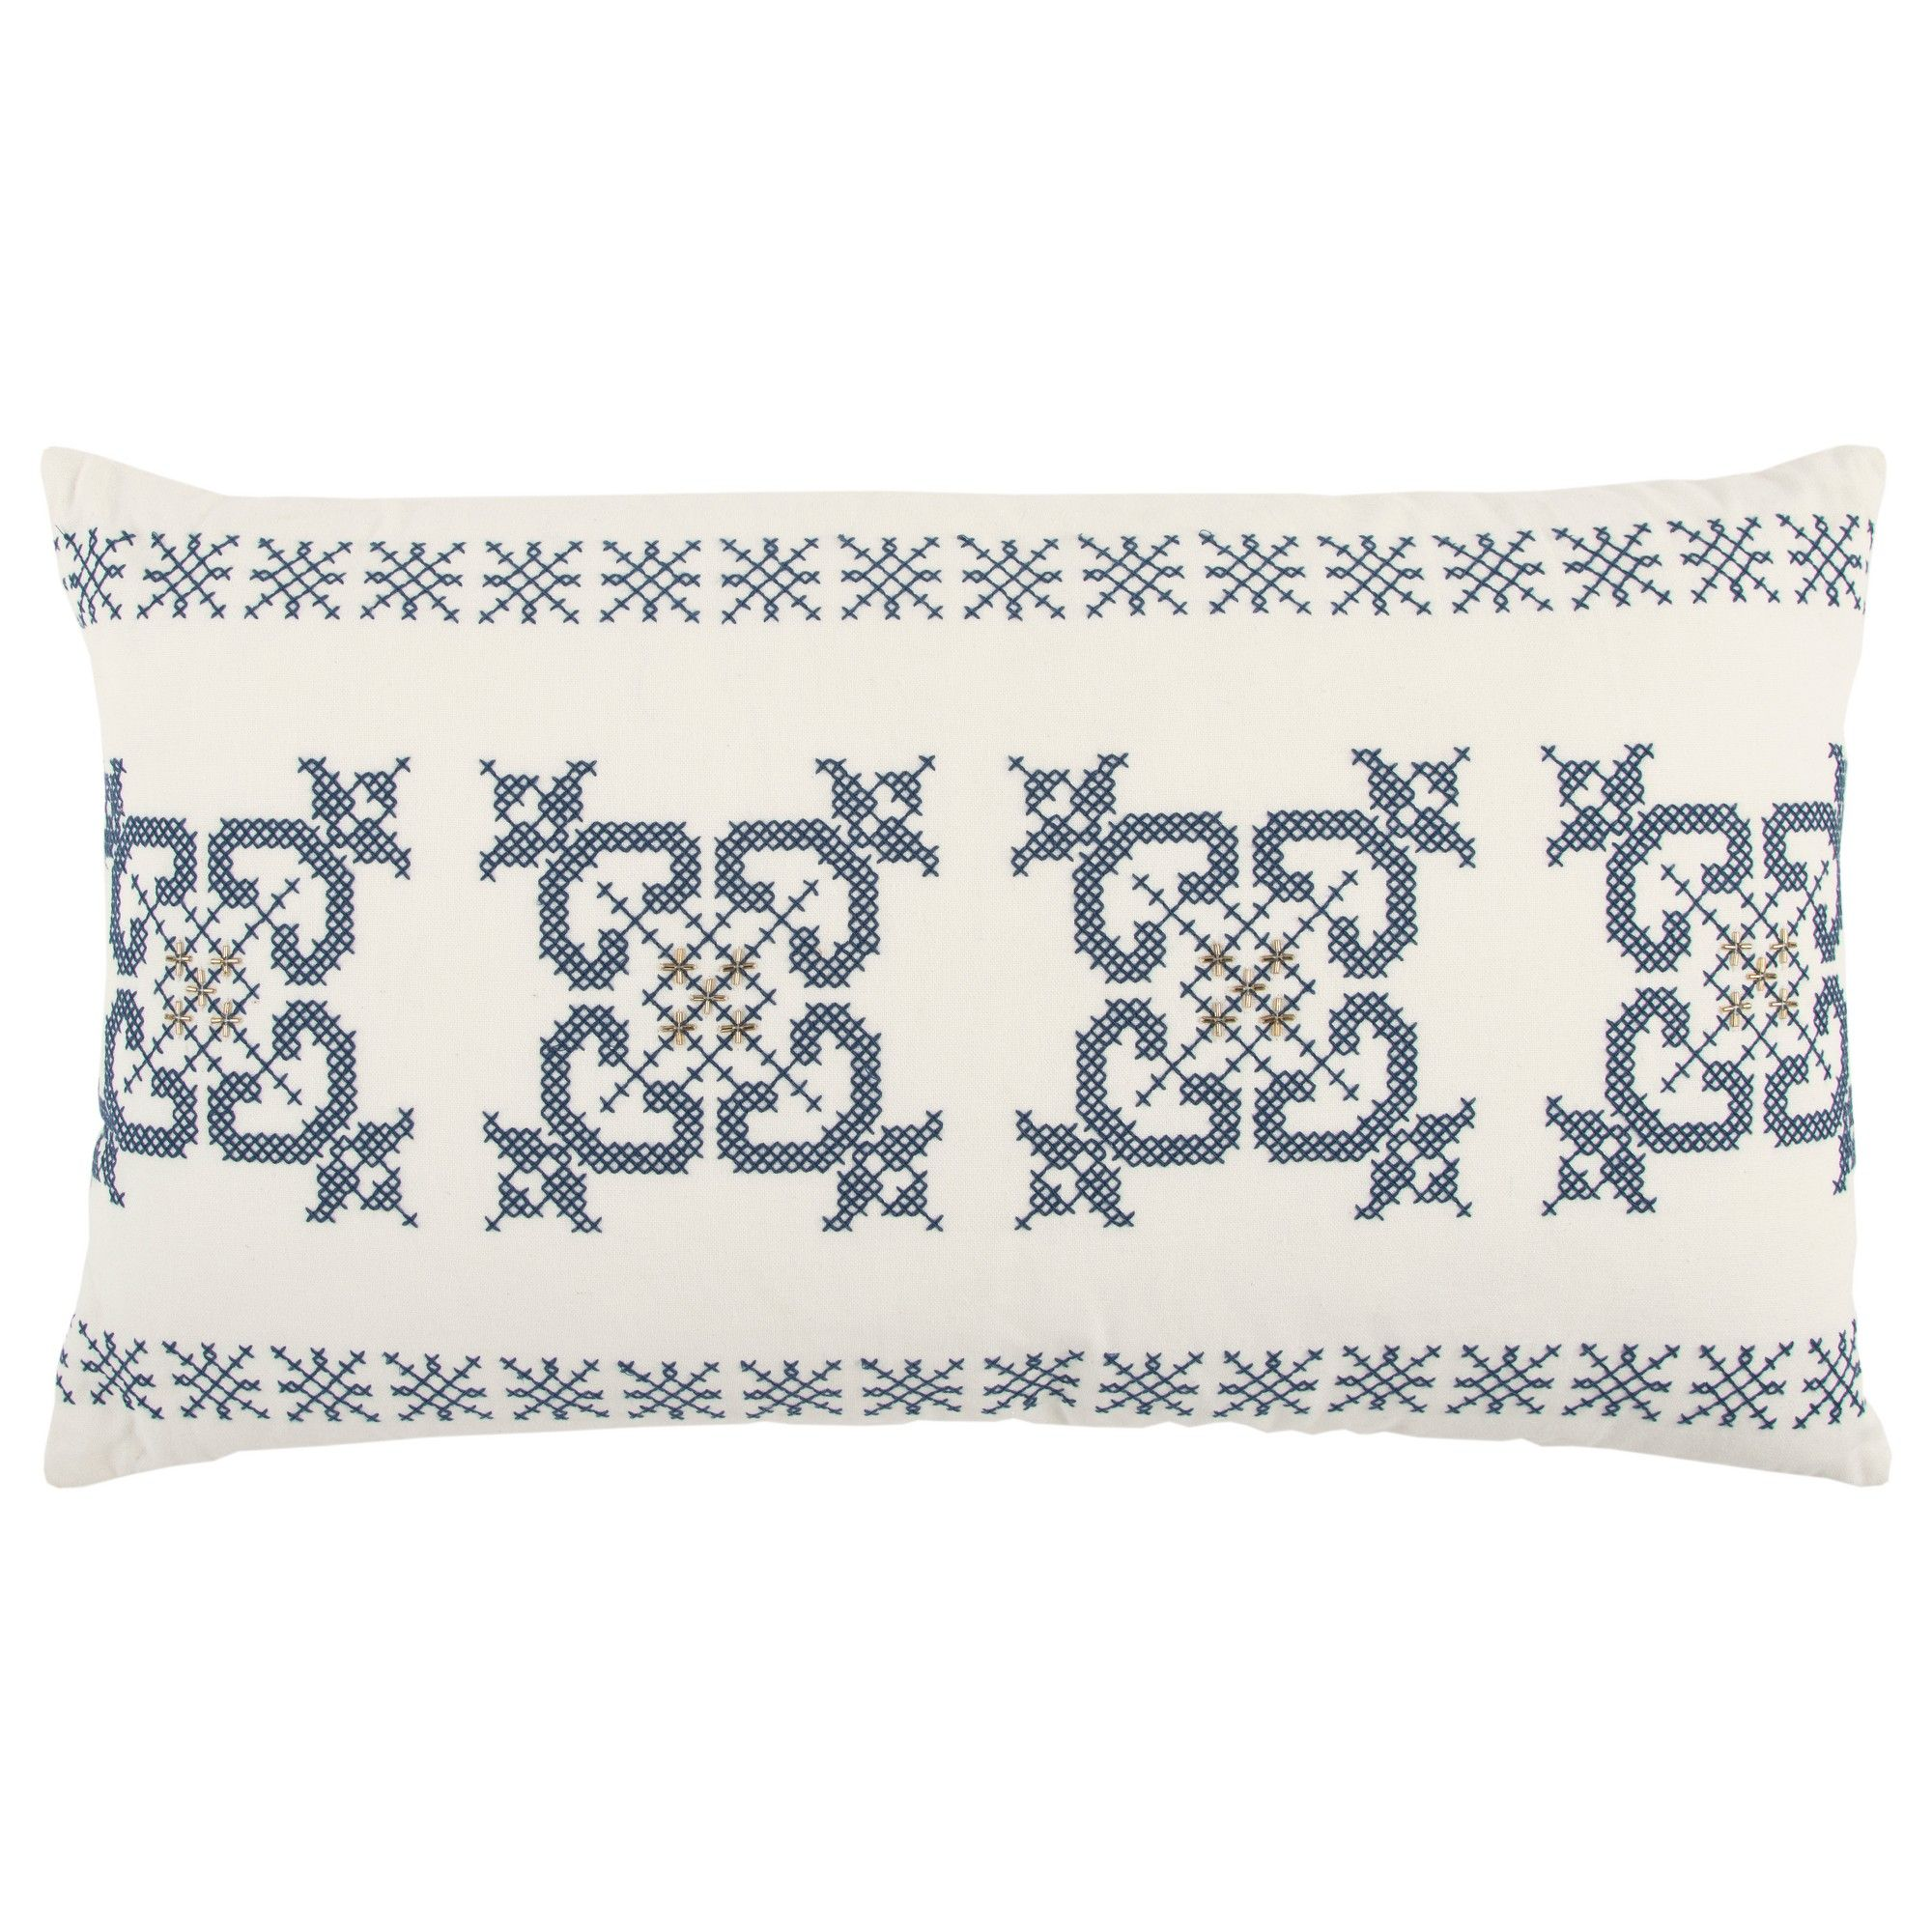 Throw pillow rizzy home ivory indigo throw pillows and products